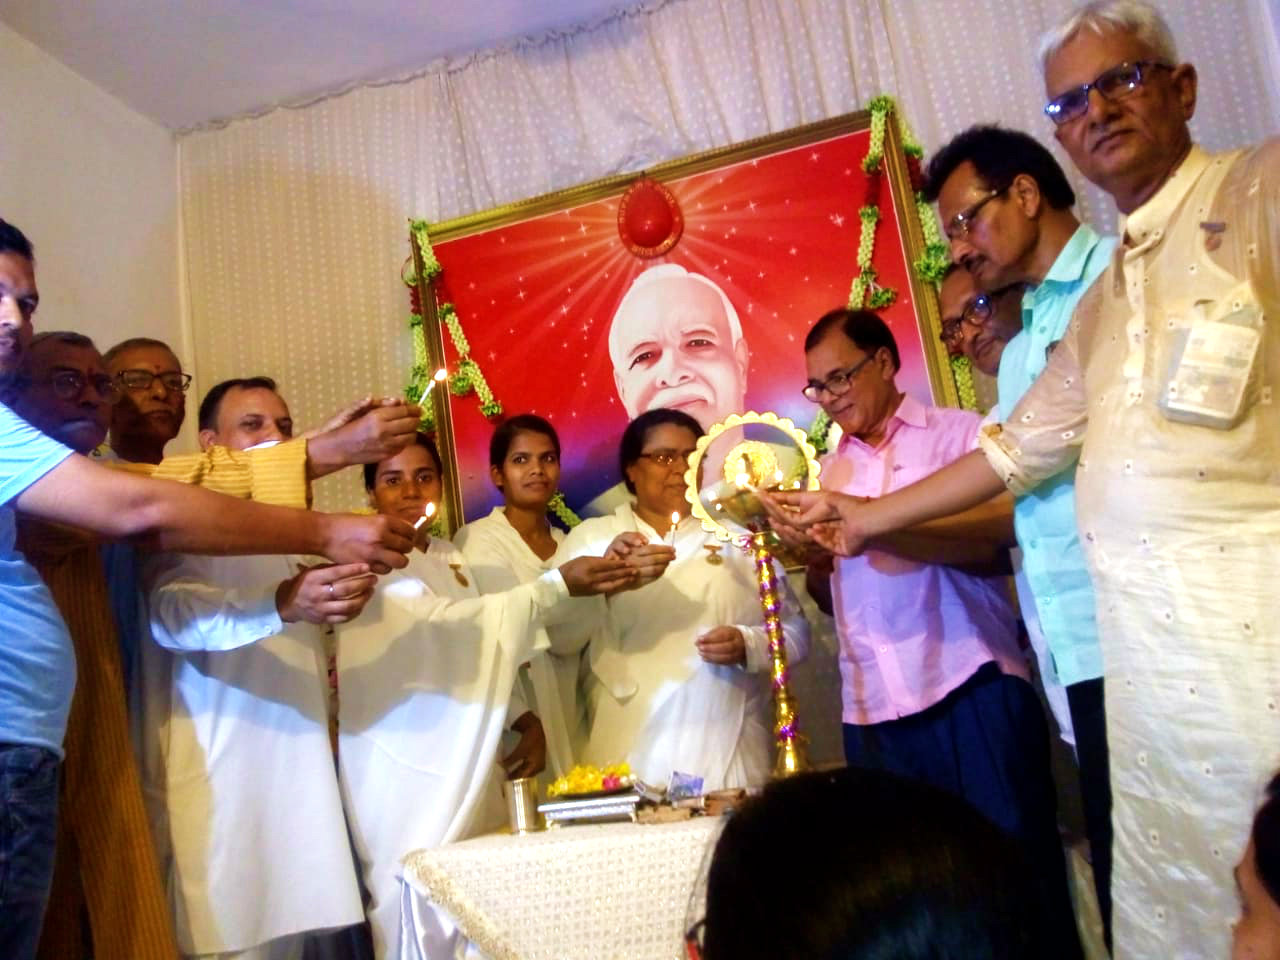 Samajsevi Dr.Bhupendra Madhepuri along with Rajyogini Brahmakumari Ranju, Dr.Ajay, Dr.Naresh, Vinay Vardhan alias Khokha Yadav, Durga-Janki Bahan & others inaugurating the 54th Punya Tithi Samaroh of Mateshwari Jagdamba Saraswati at Prajapita Brahma kumari Ishwariya Vishwavidyalaya Branch, Madhepura